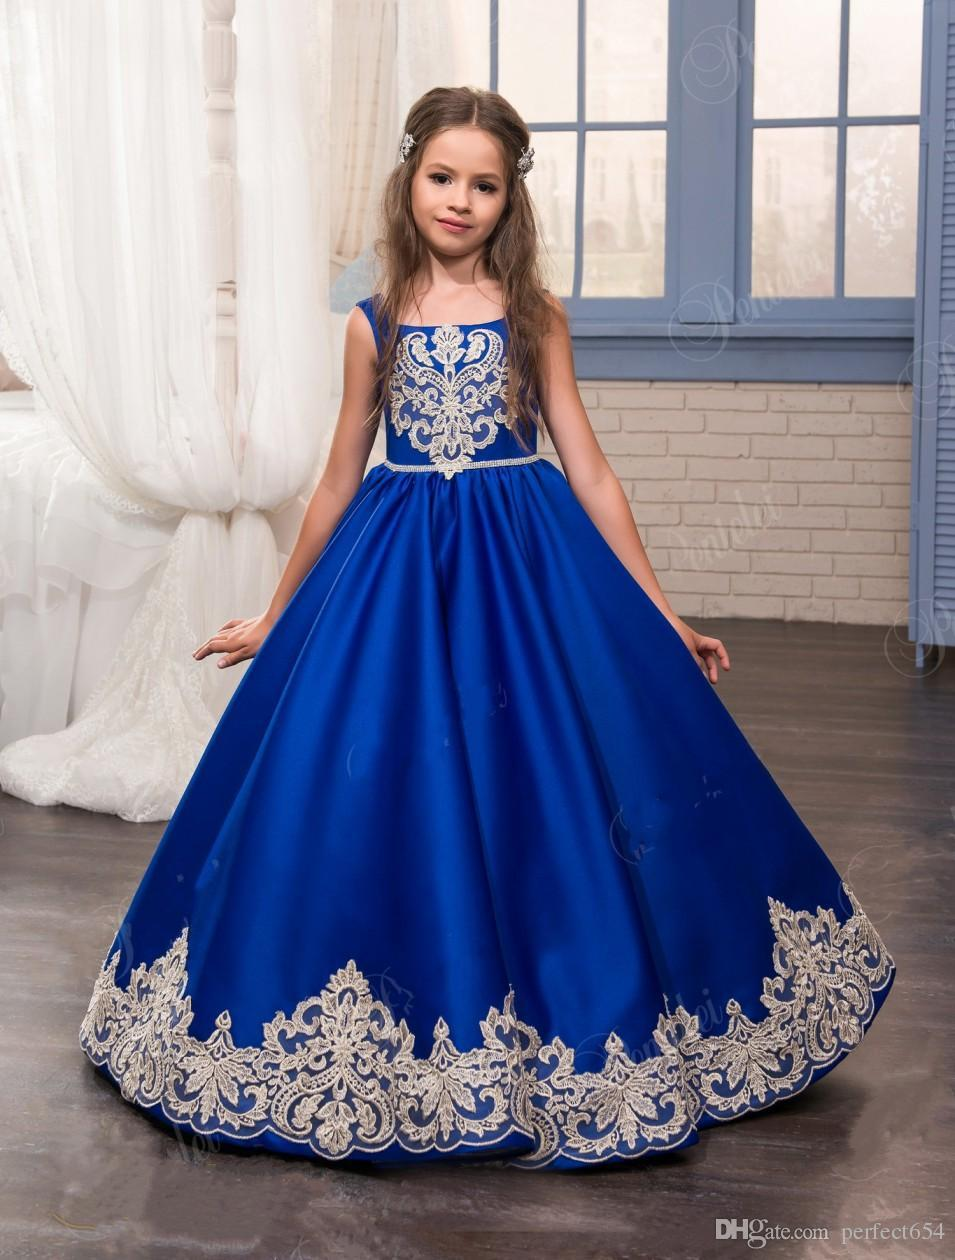 Childrens Royal Blue Party Dresses 6